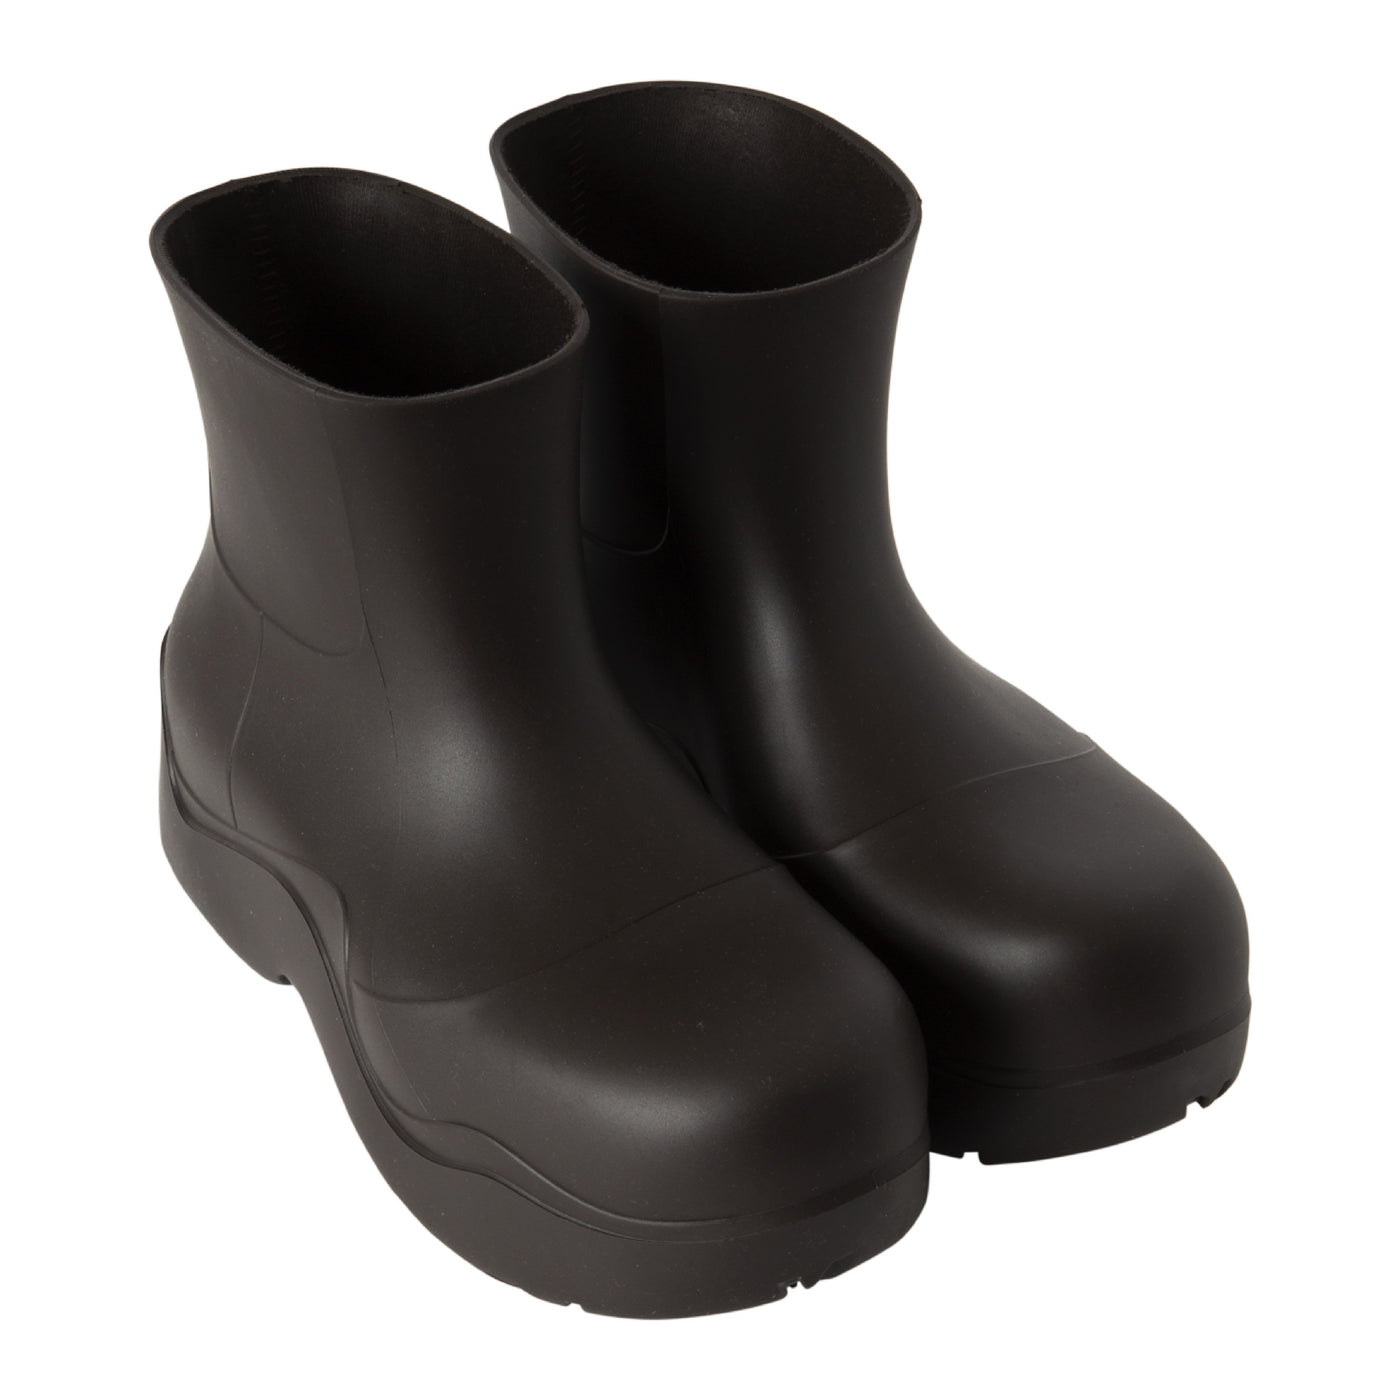 Load image into Gallery viewer, BOTTEGA VENETA BV PUDDLE BOOTS BLACK